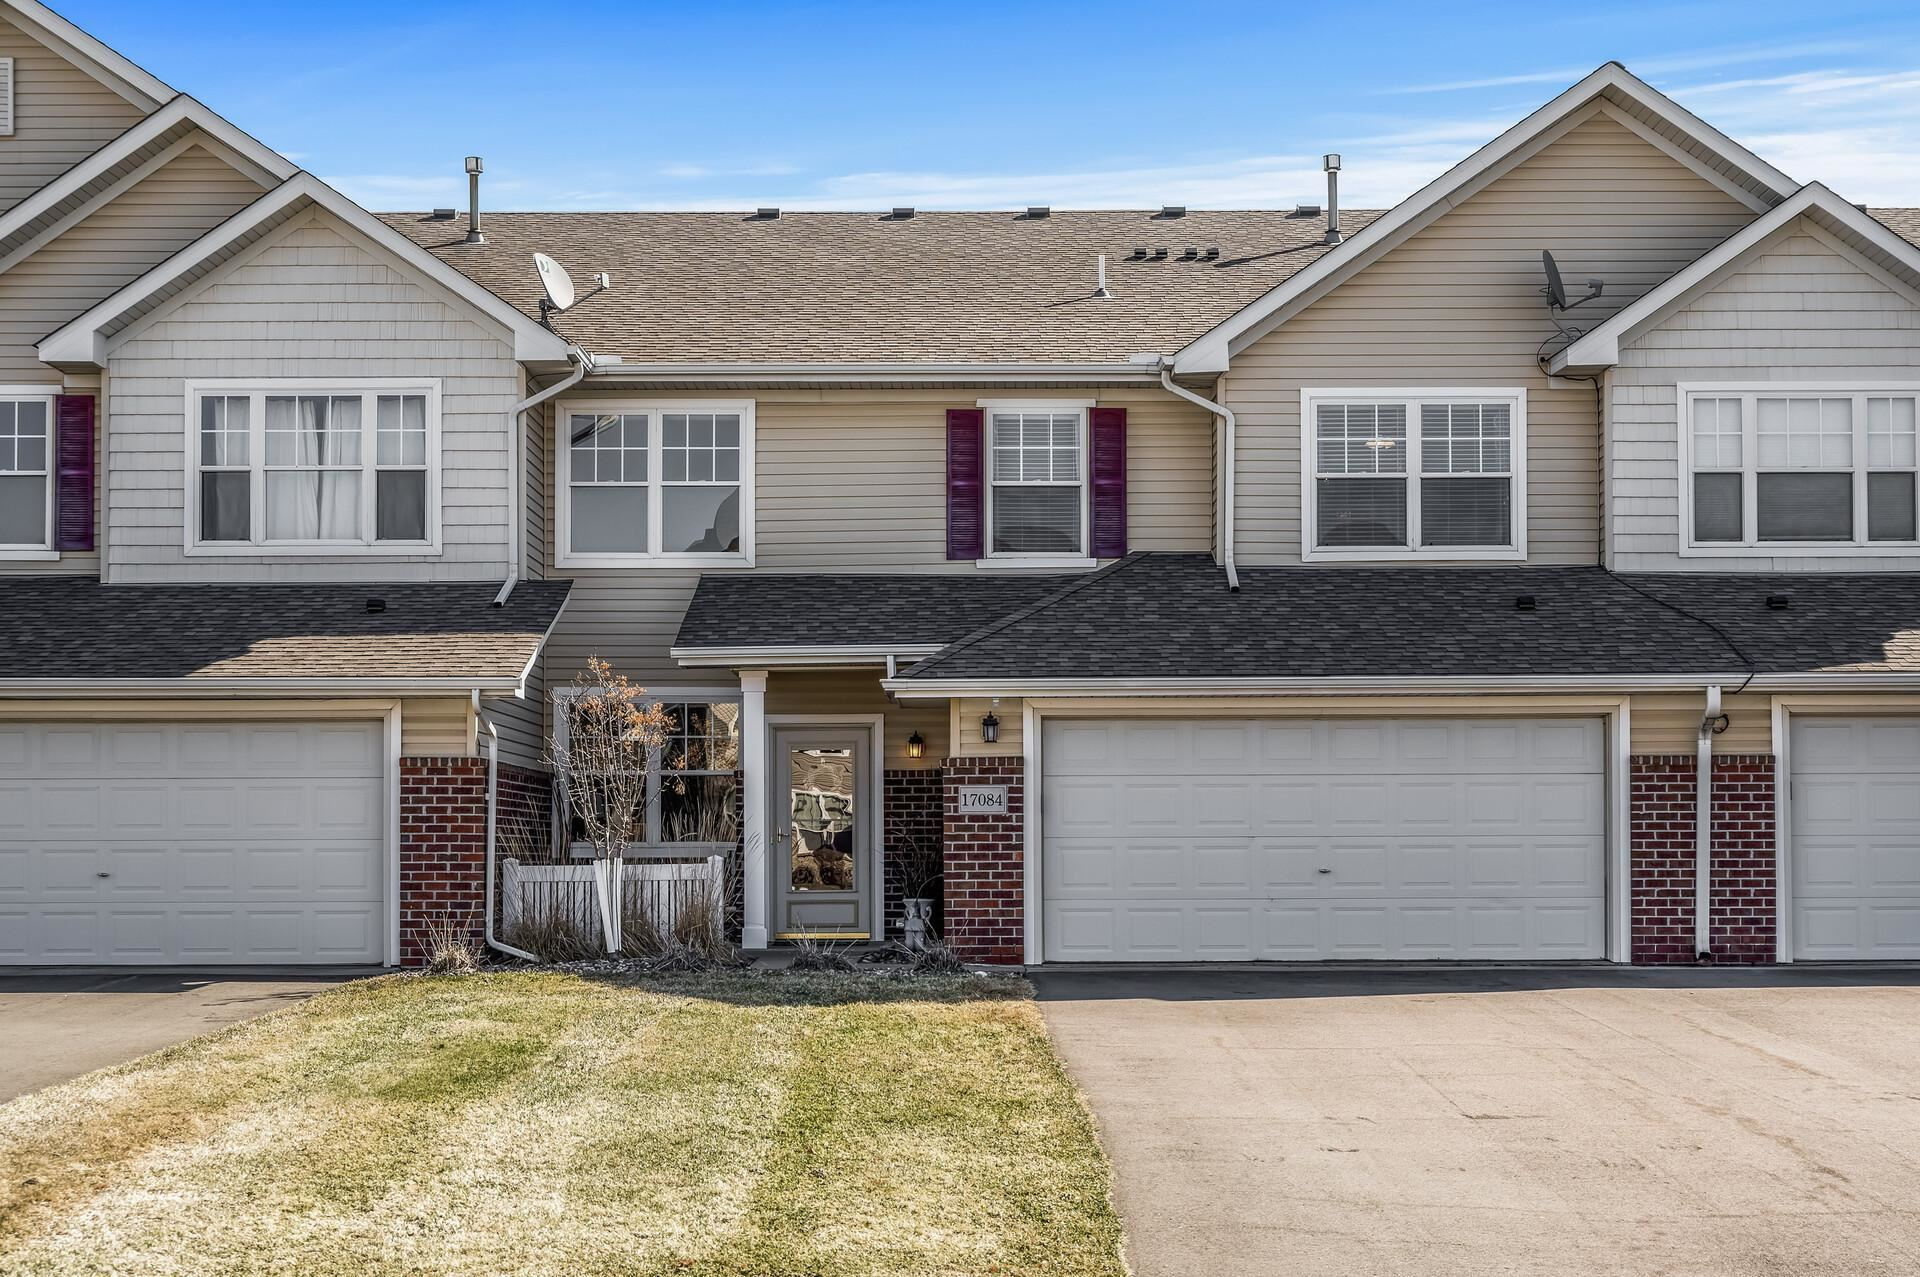 Photo of 17084 Encina Path, Lakeville, MN 55024 (MLS # 5734152)